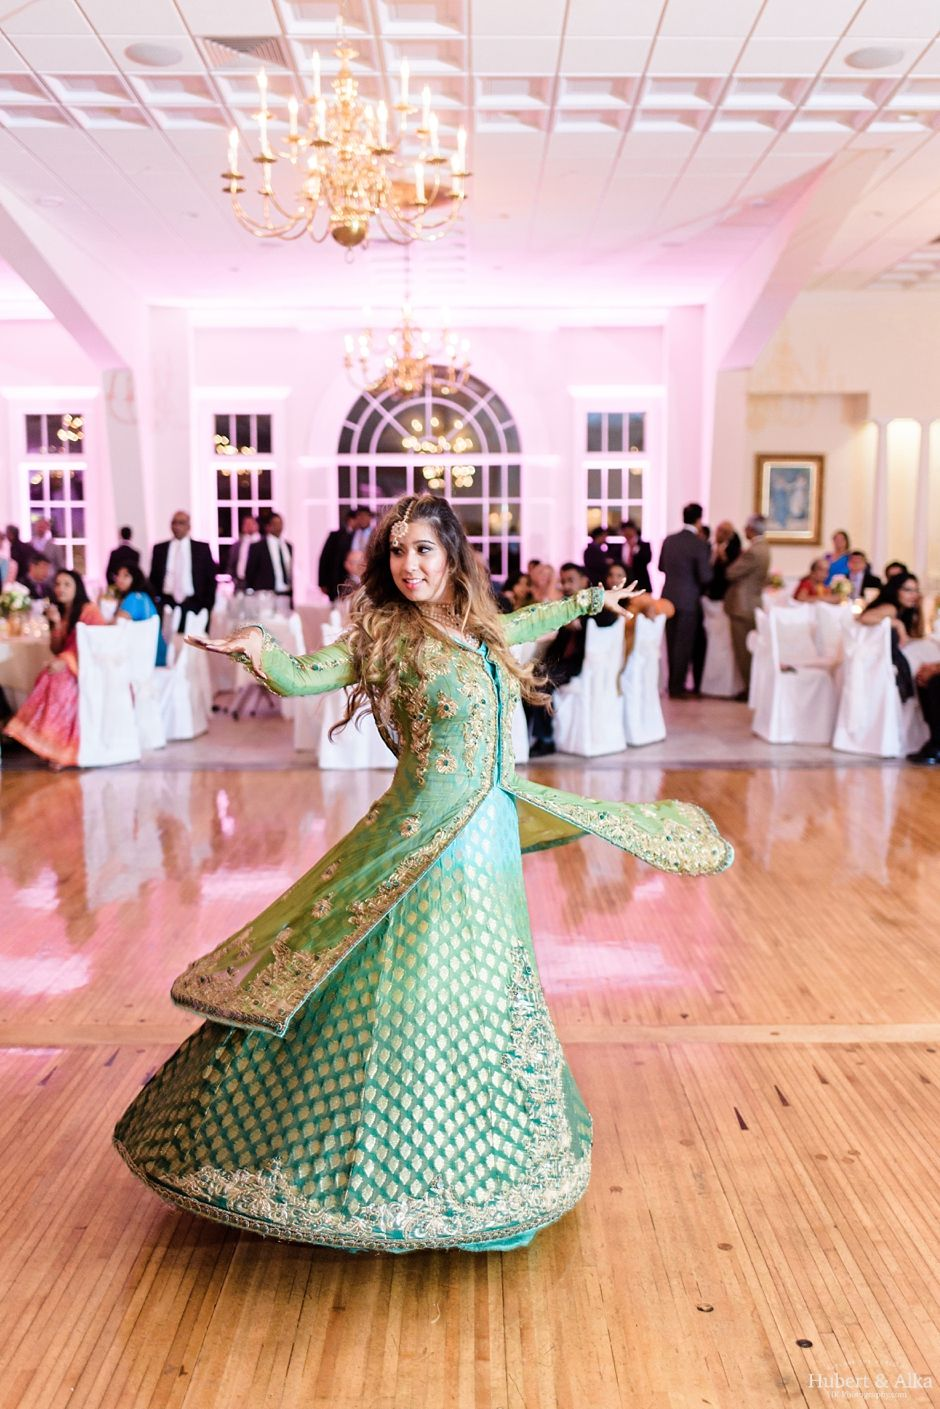 Aqua Turf Club Southington Ct Wedding Indian Wedding Formal Dresses Long Wedding Indian Wedding